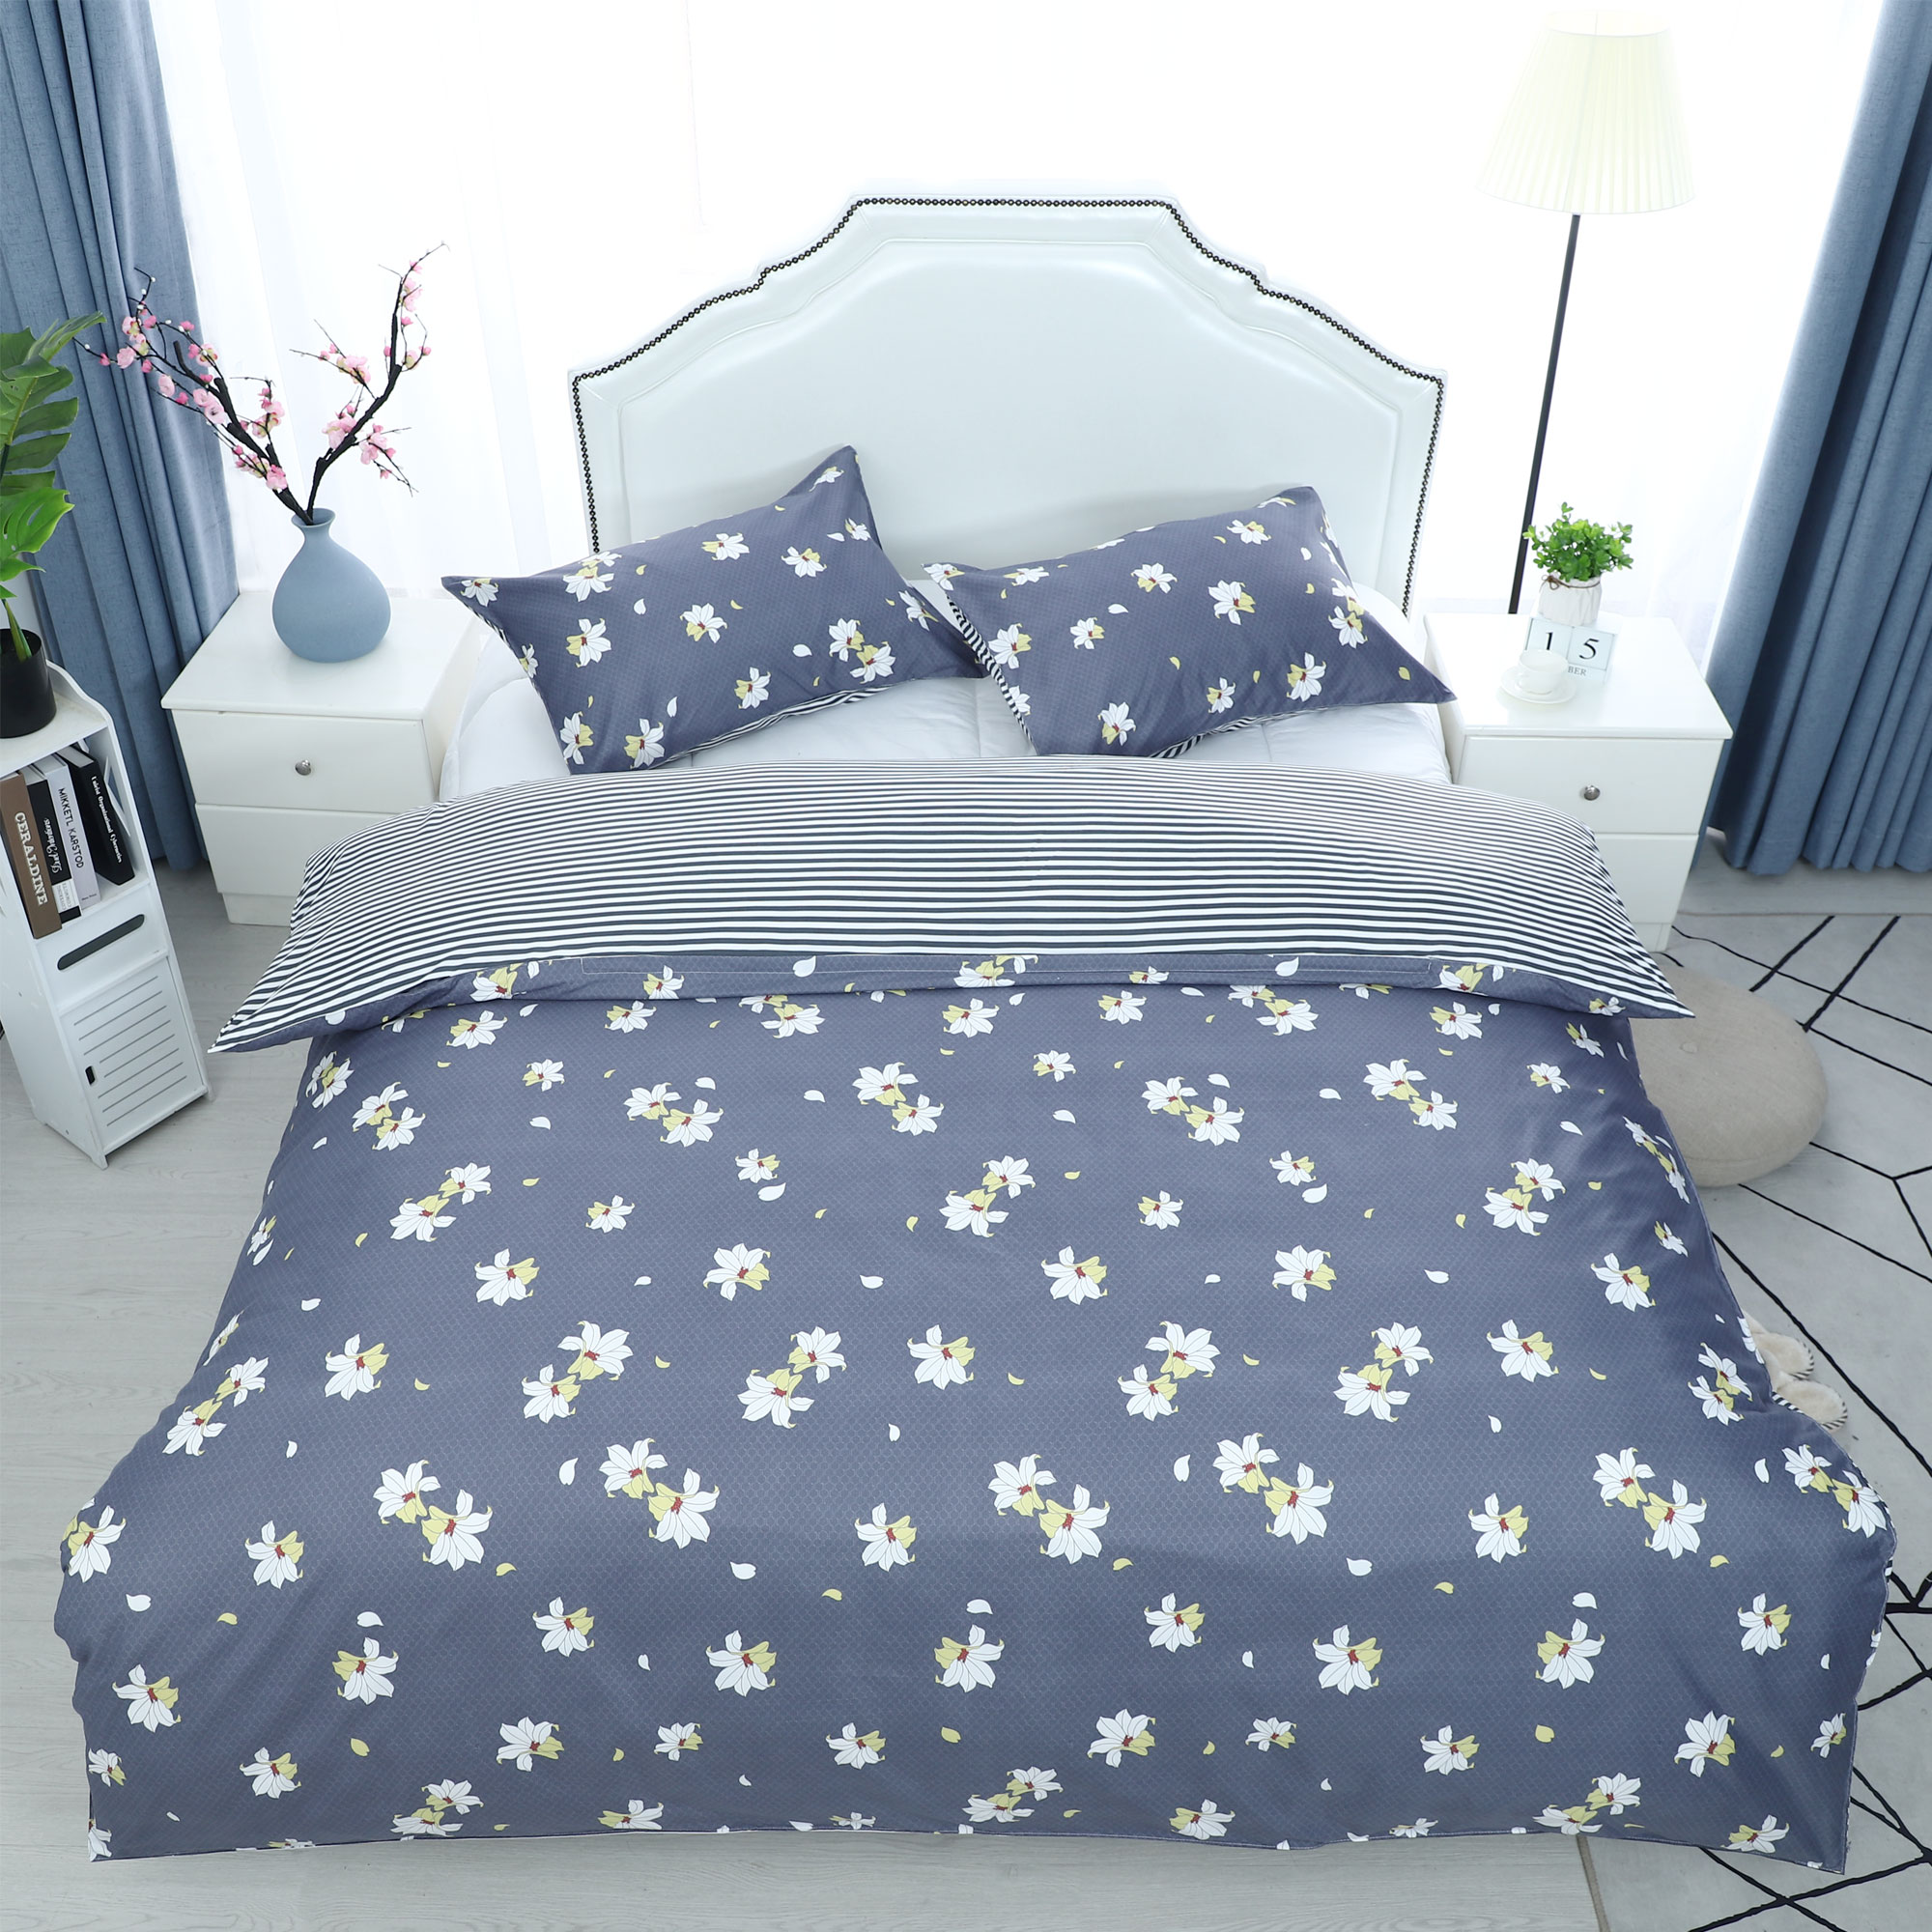 3pcs Duvet Cover Sets(1 Duvet Cover + 2 Pillow Shams) Full, Petunia Pattern